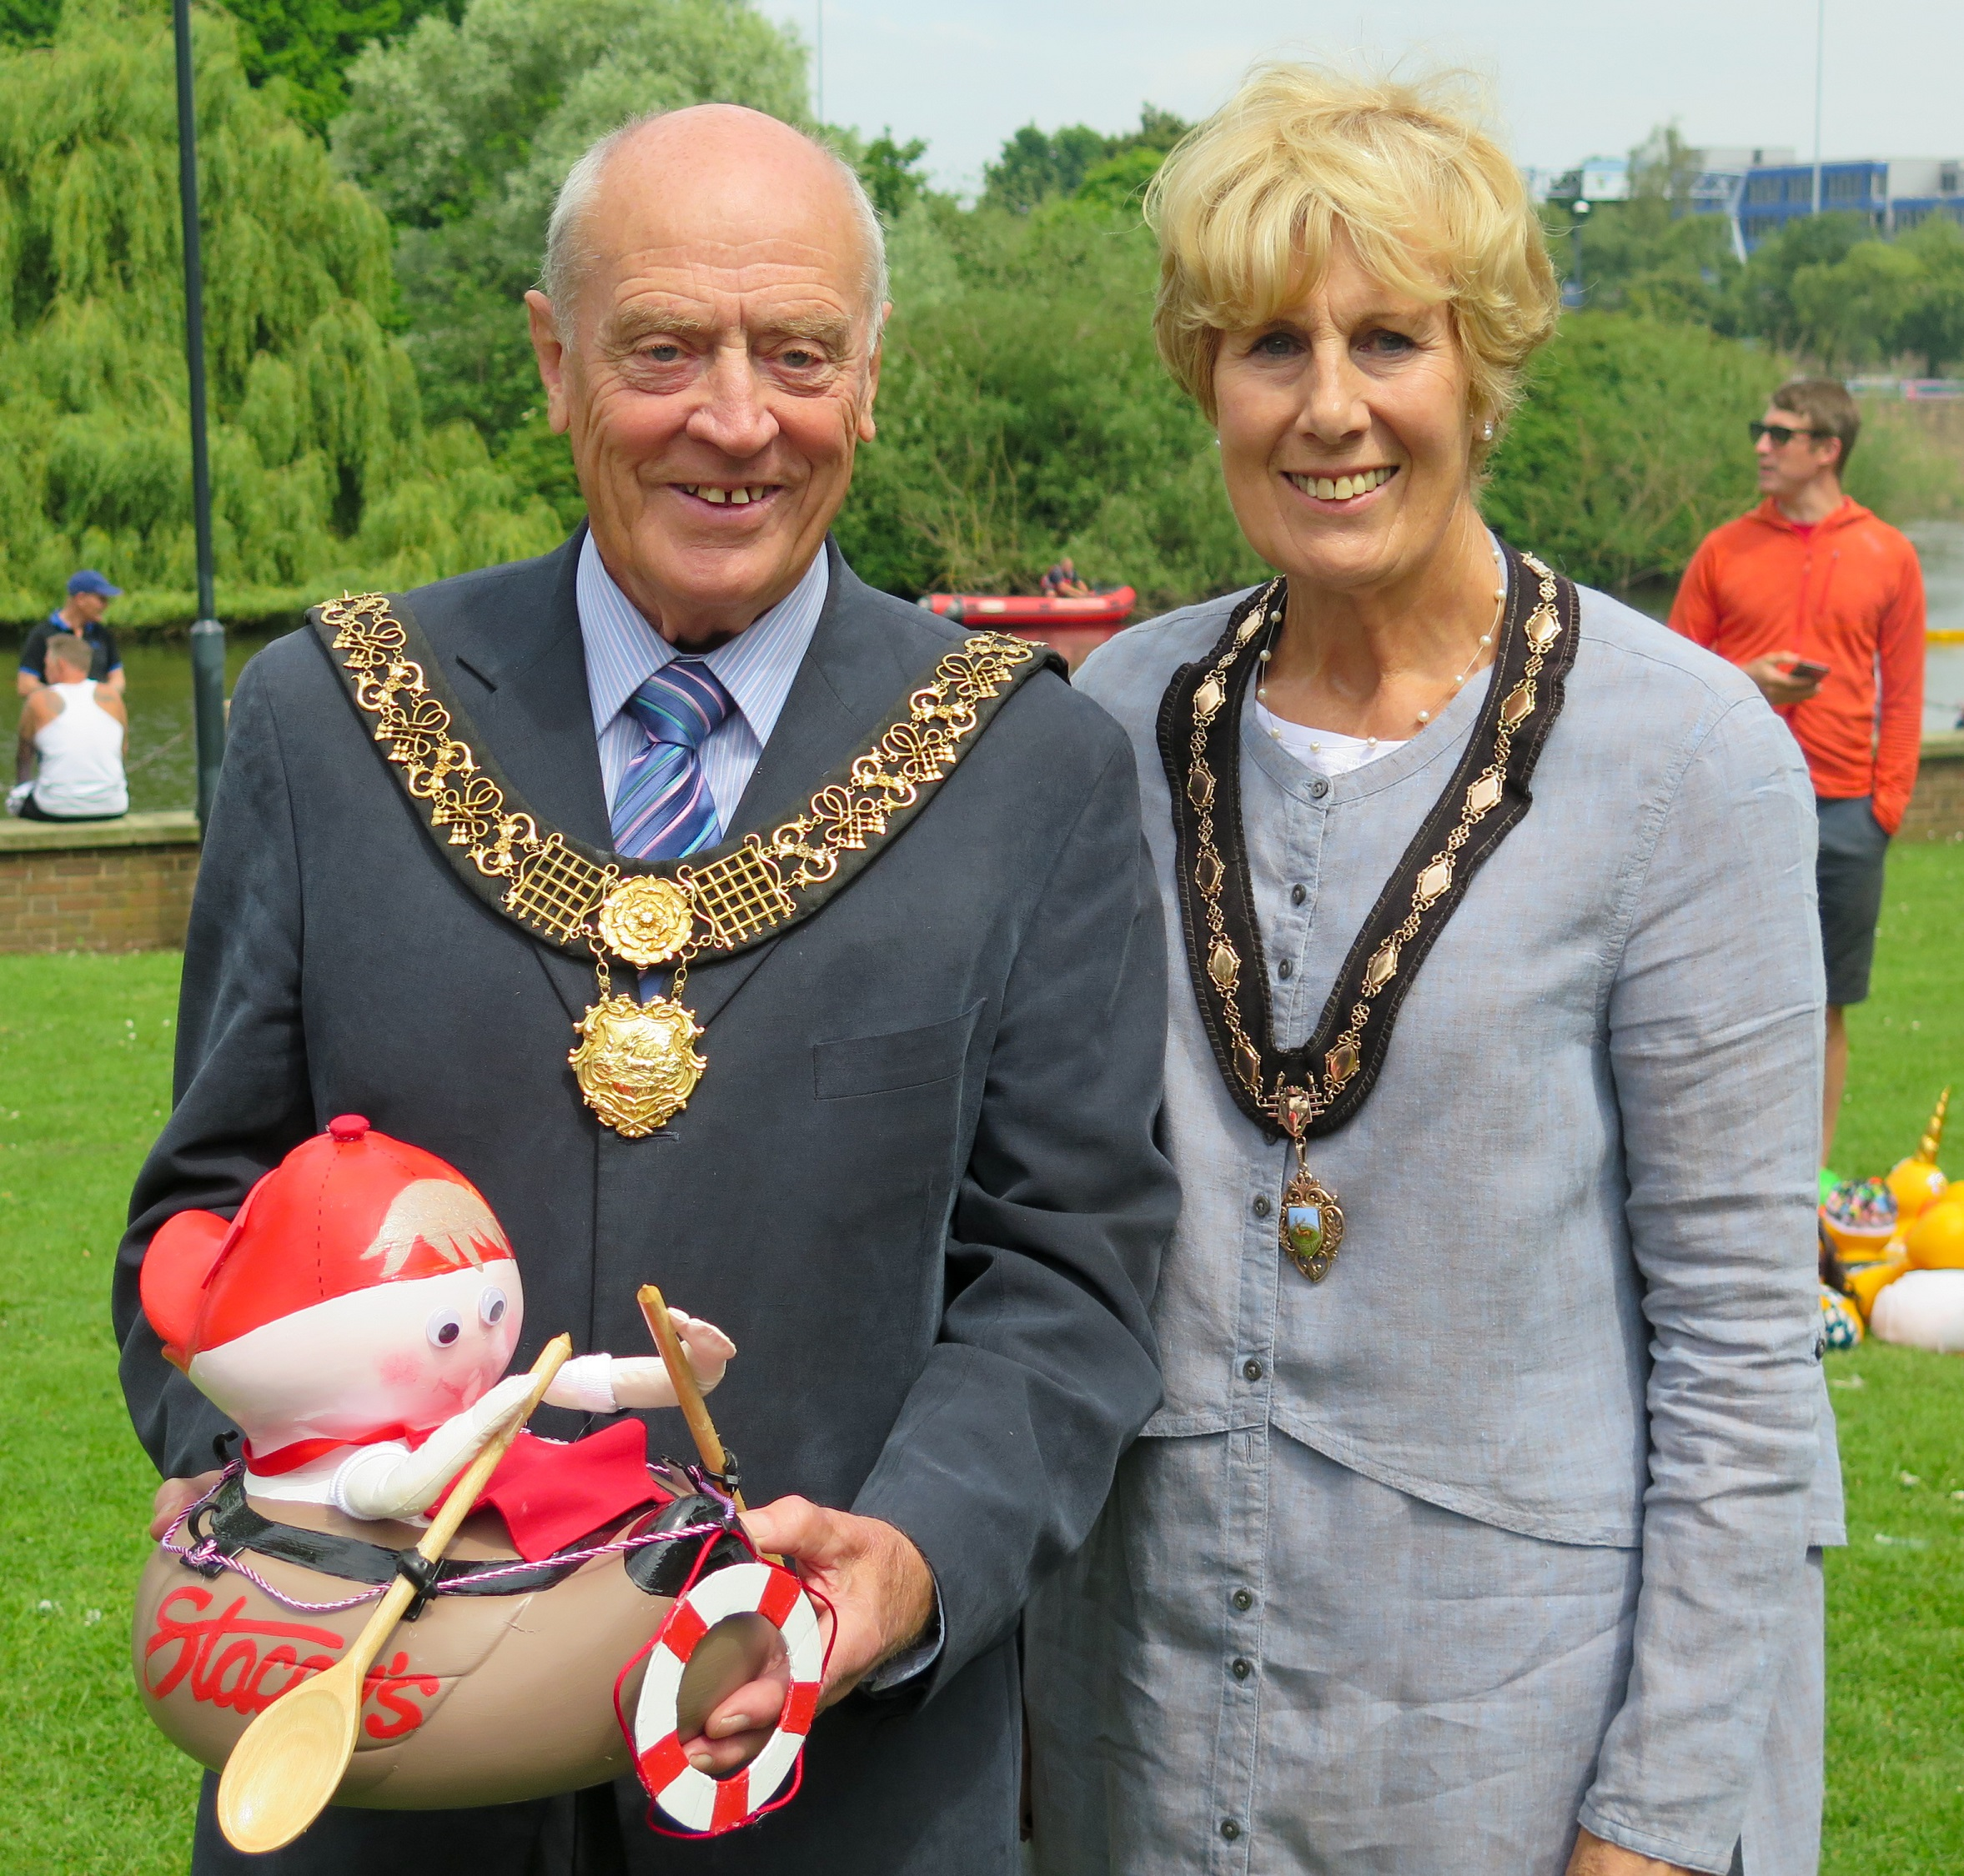 Image showing Derby Mayor and Mayoress with winning duck